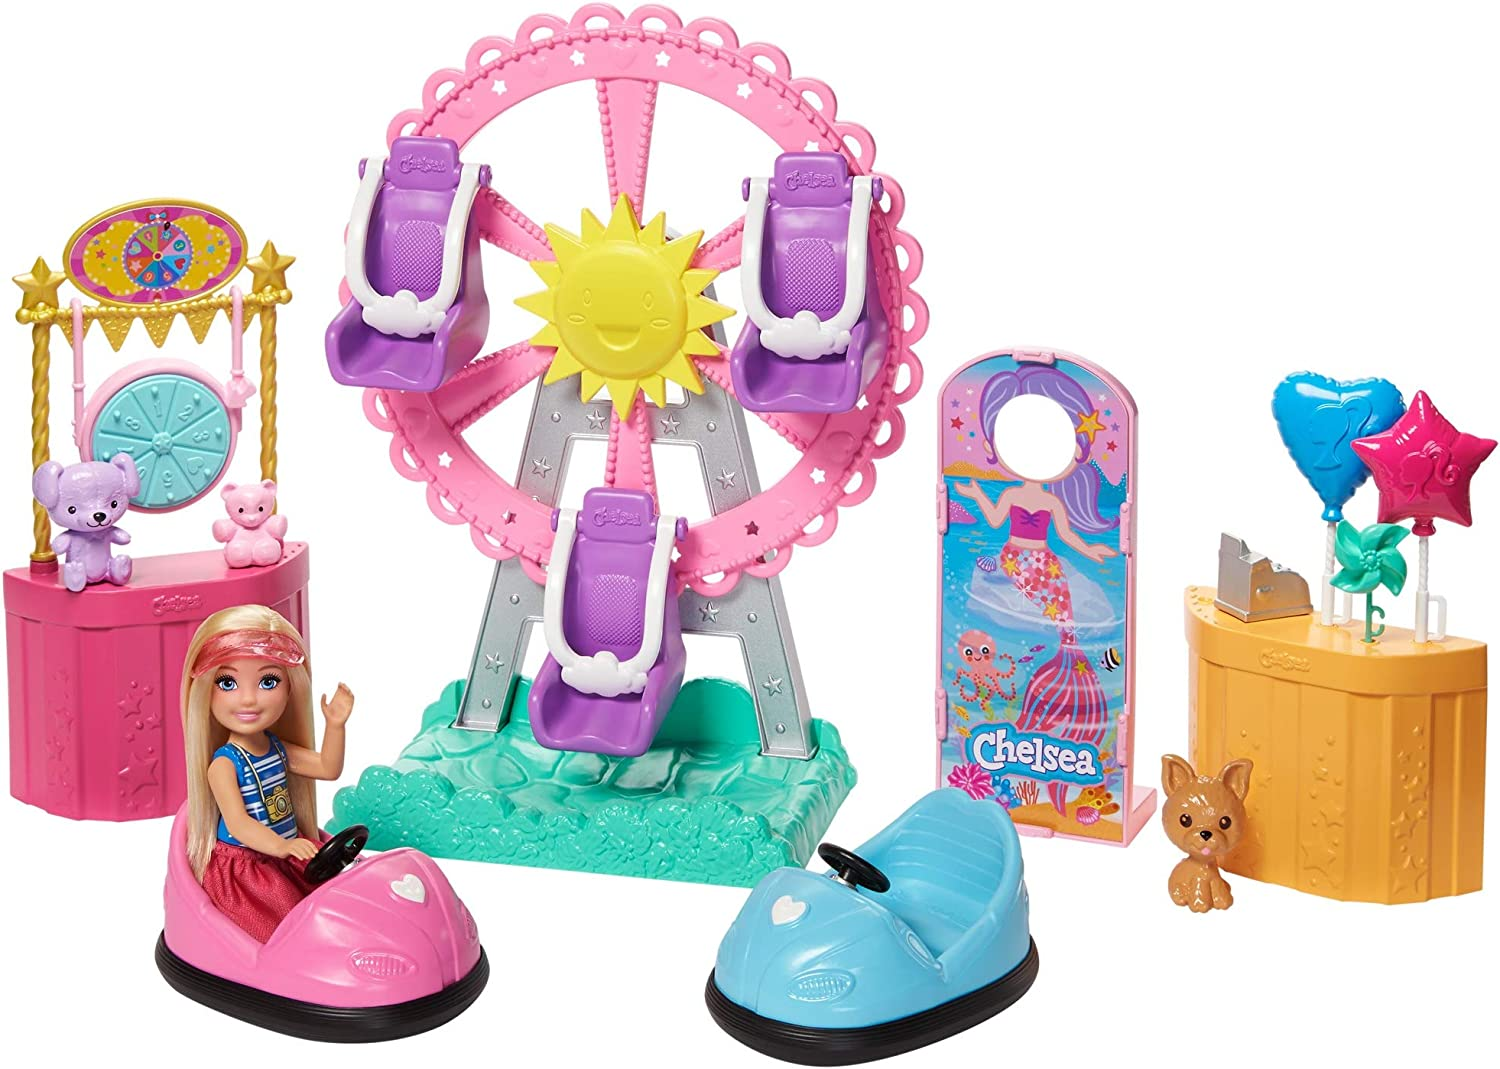 Barbie Club Chelsea Doll and Carnival Playset, 6-inch Blonde Wearing Fashion and Accessories, with Ferris Wheel, Bumper Cars, Puppy and More, Gift for 3 to 7 Year Olds: Toys & Games